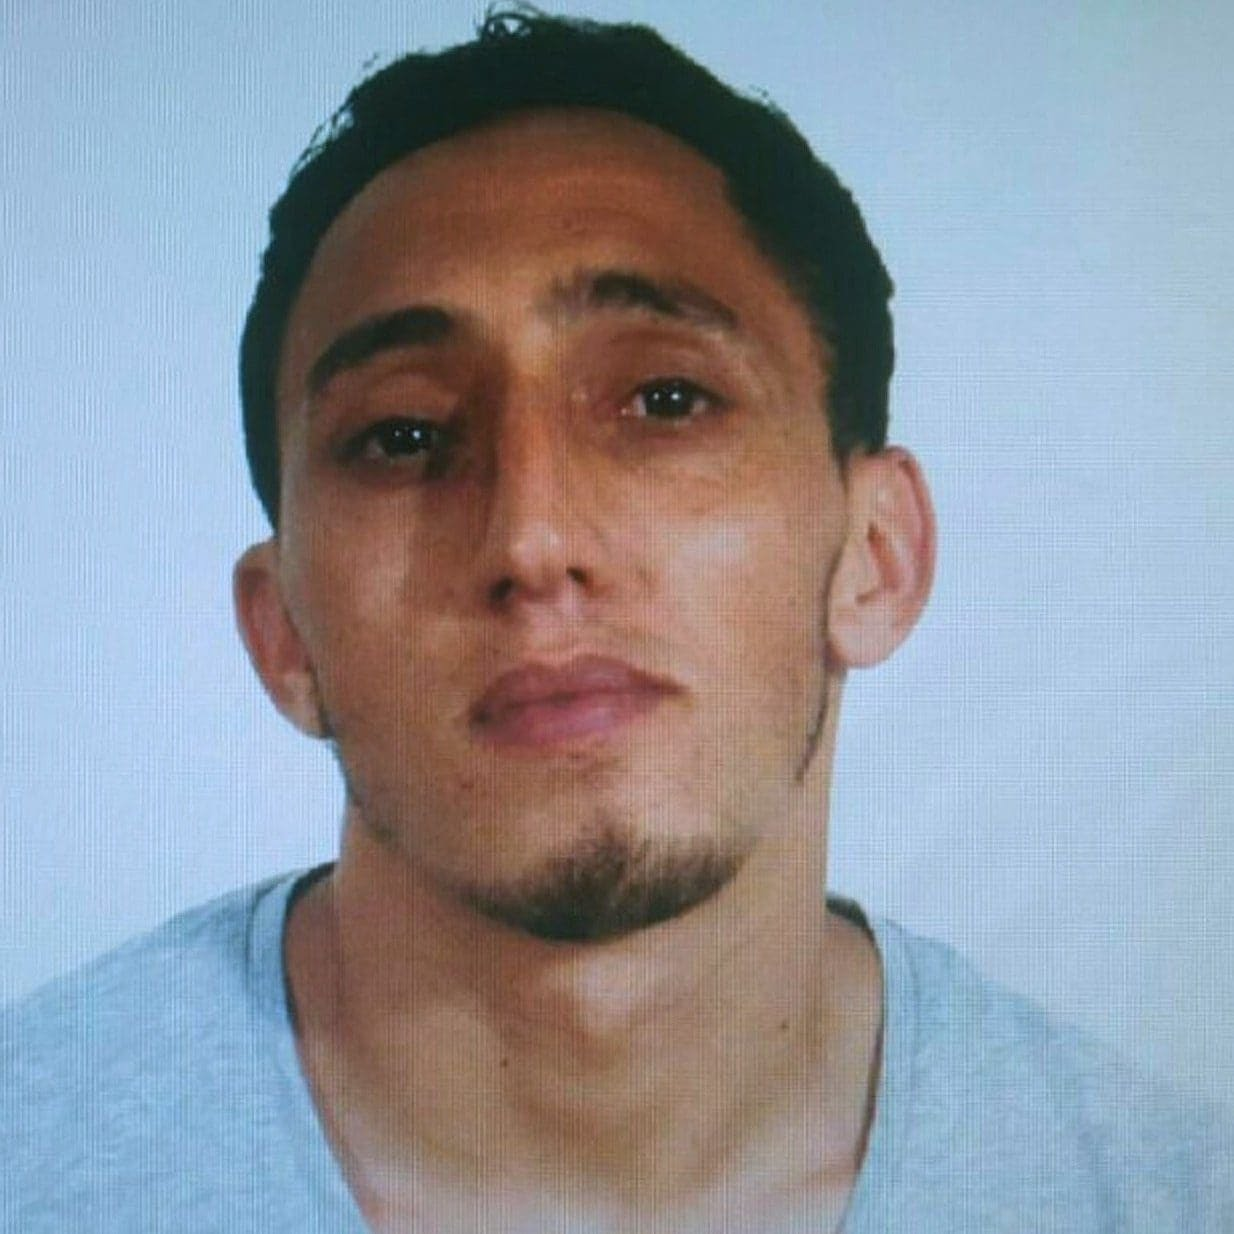 A handout photo made available by Spanish National Police shows Driss Oukabir, alleged to have rented the van which was used to crashed into pedestrians in Las Ramblas